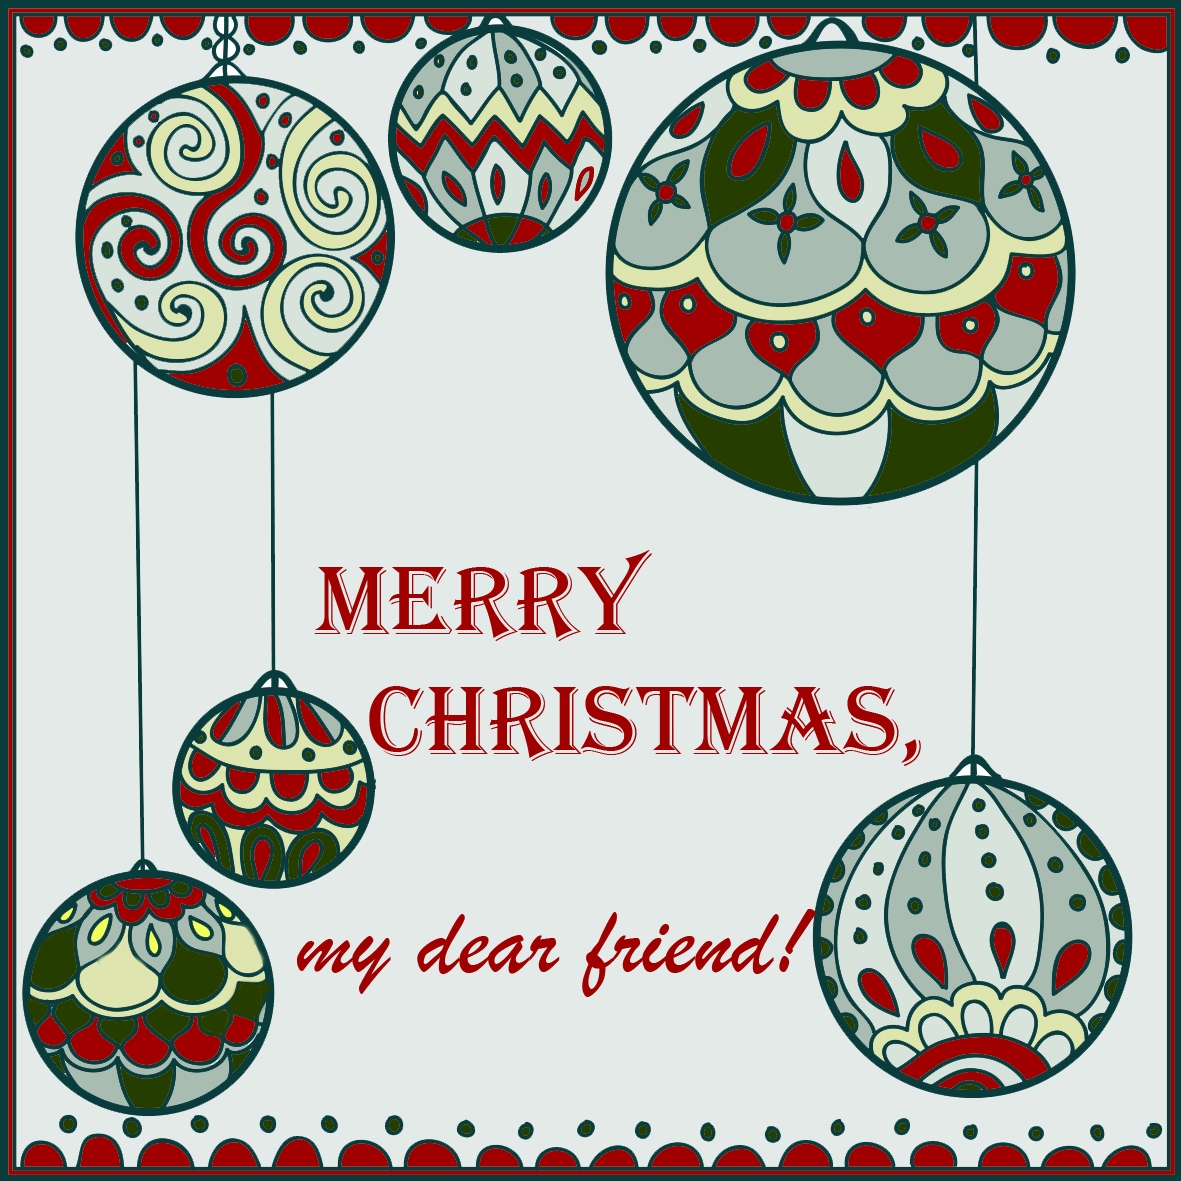 Merry Christmas, my dear friend! by Ștefania Bălăucă - Voubs.com